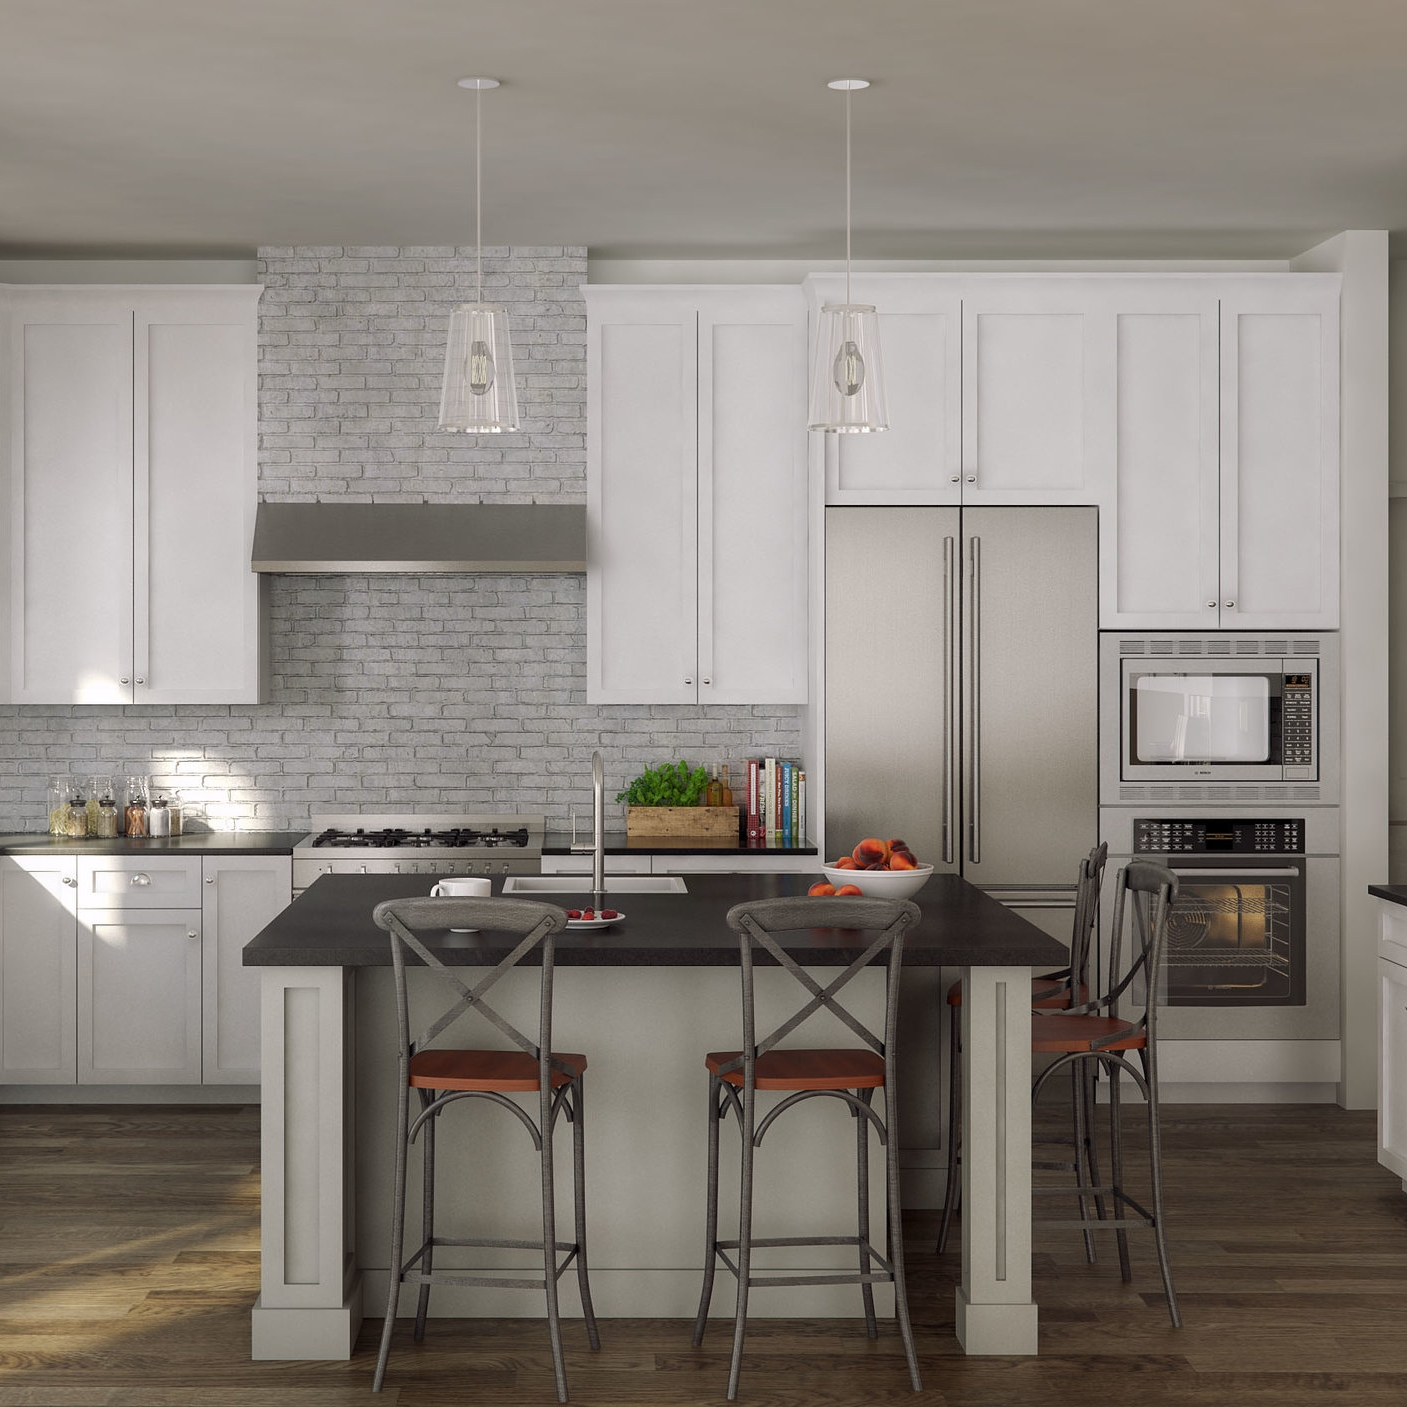 Abingdon Estates - Modern Farmhouse Kitchen.jpg